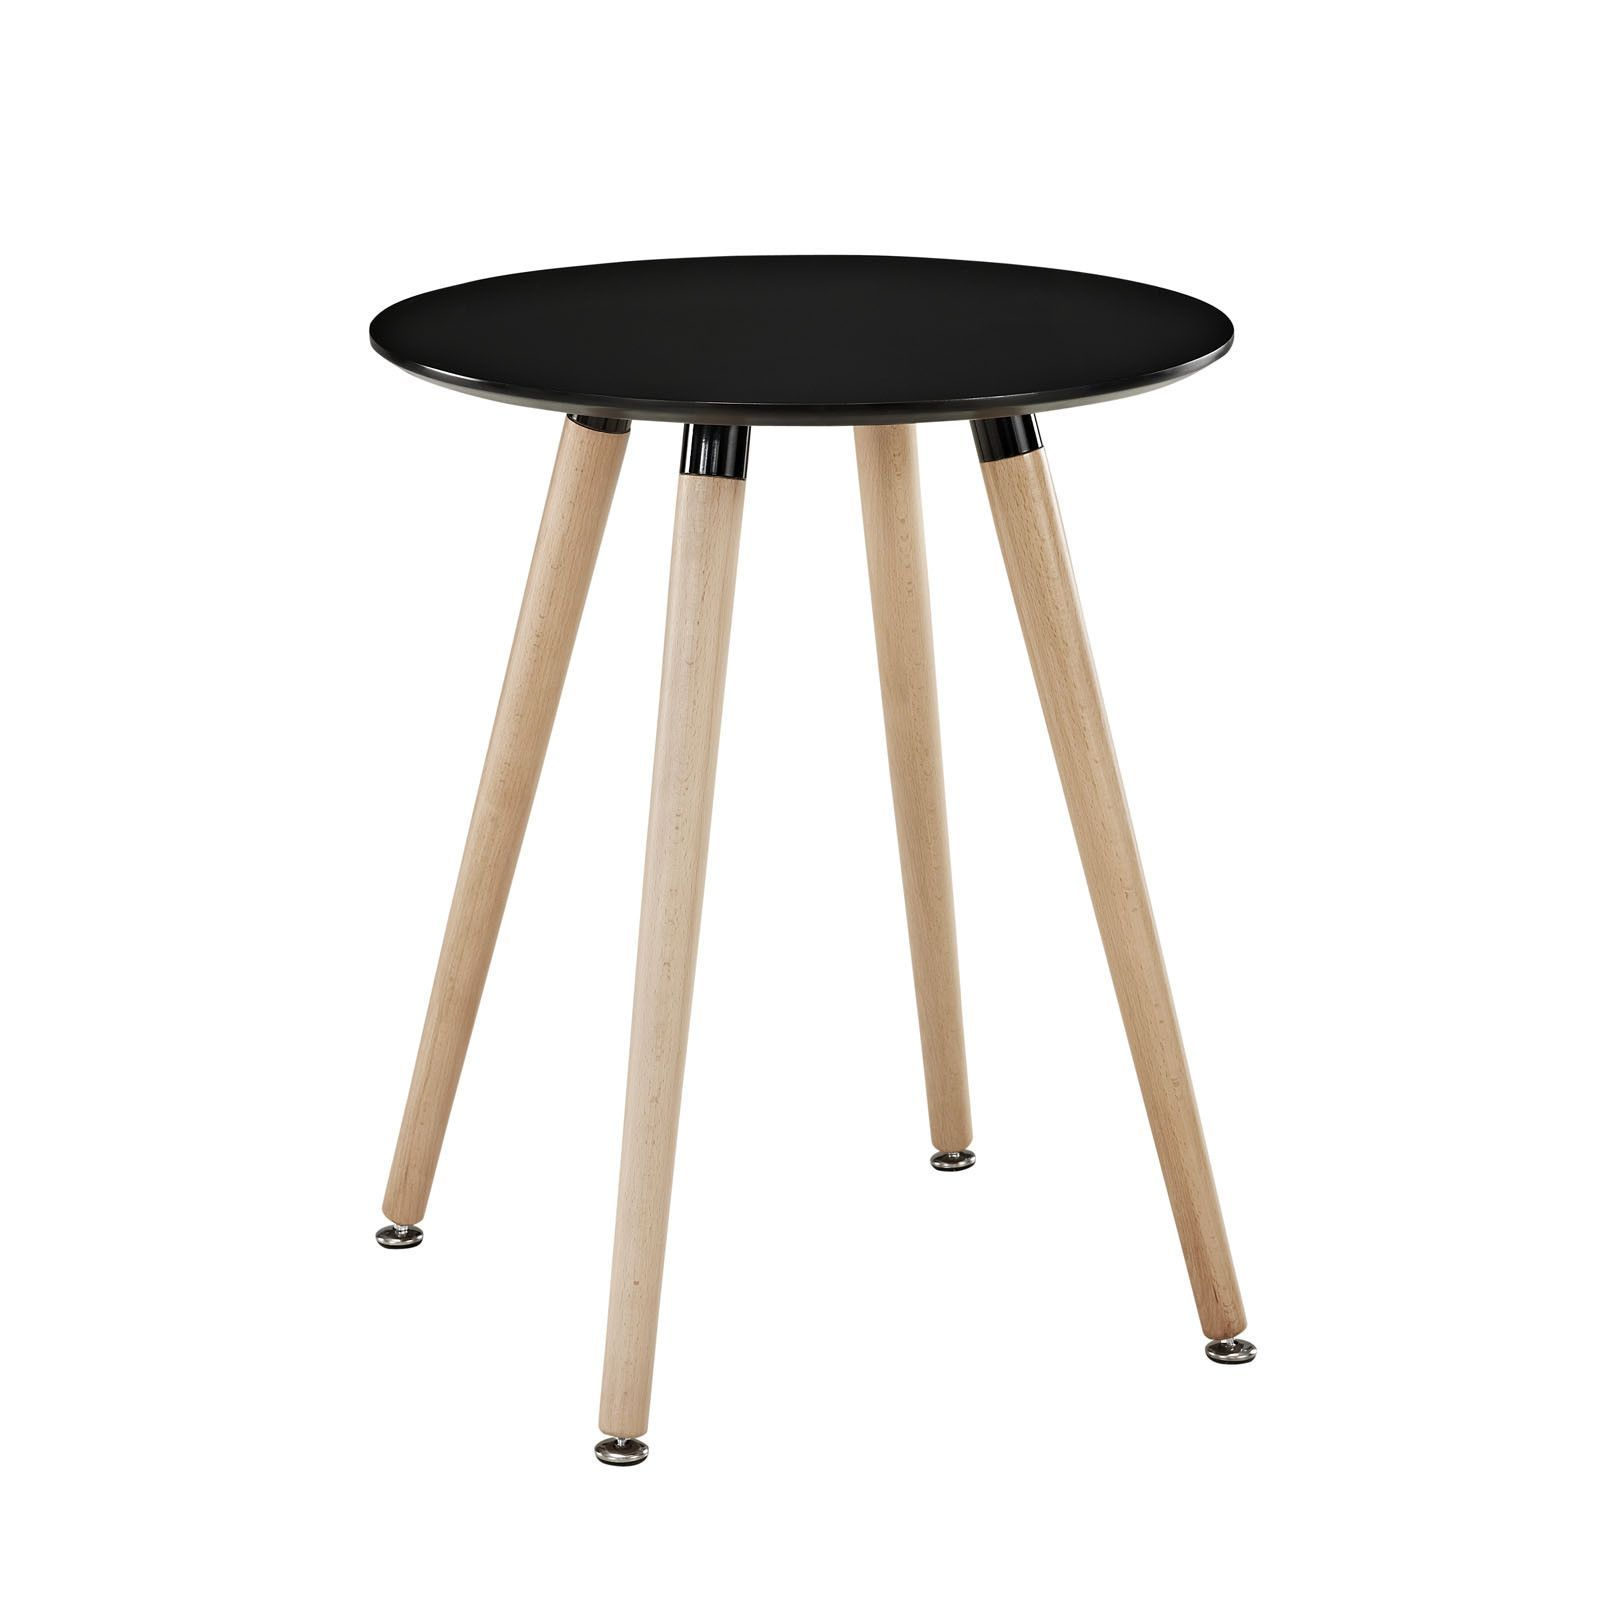 Solid Beechwood Legs And A Smooth Veneer Top Create An Artistic Side Table That Presents